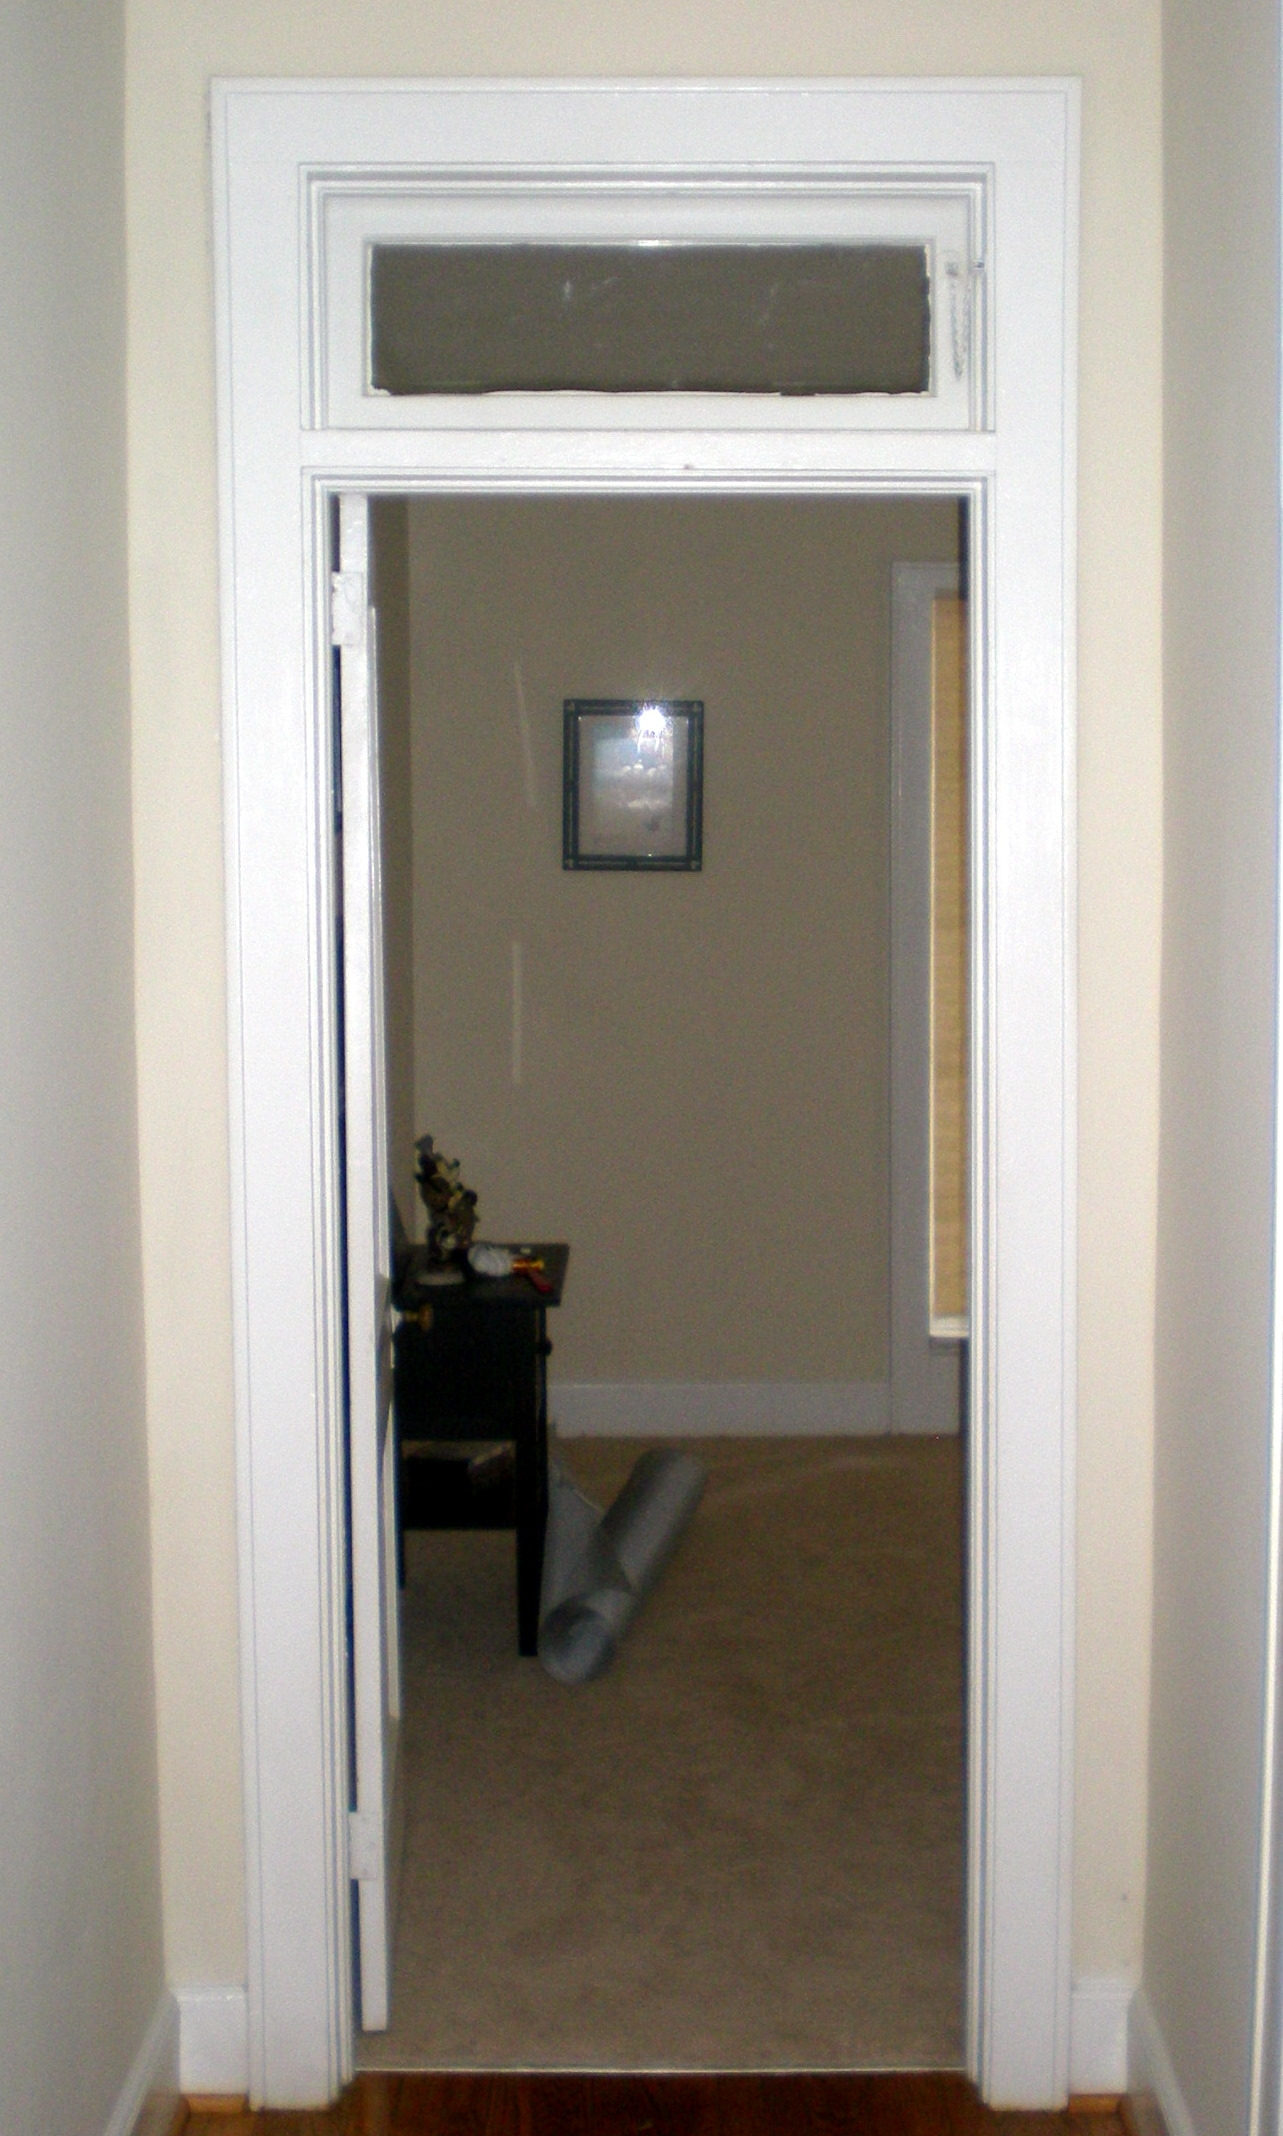 Transom Window Over Bathroom Doortransom window that opens would be nice and practical above